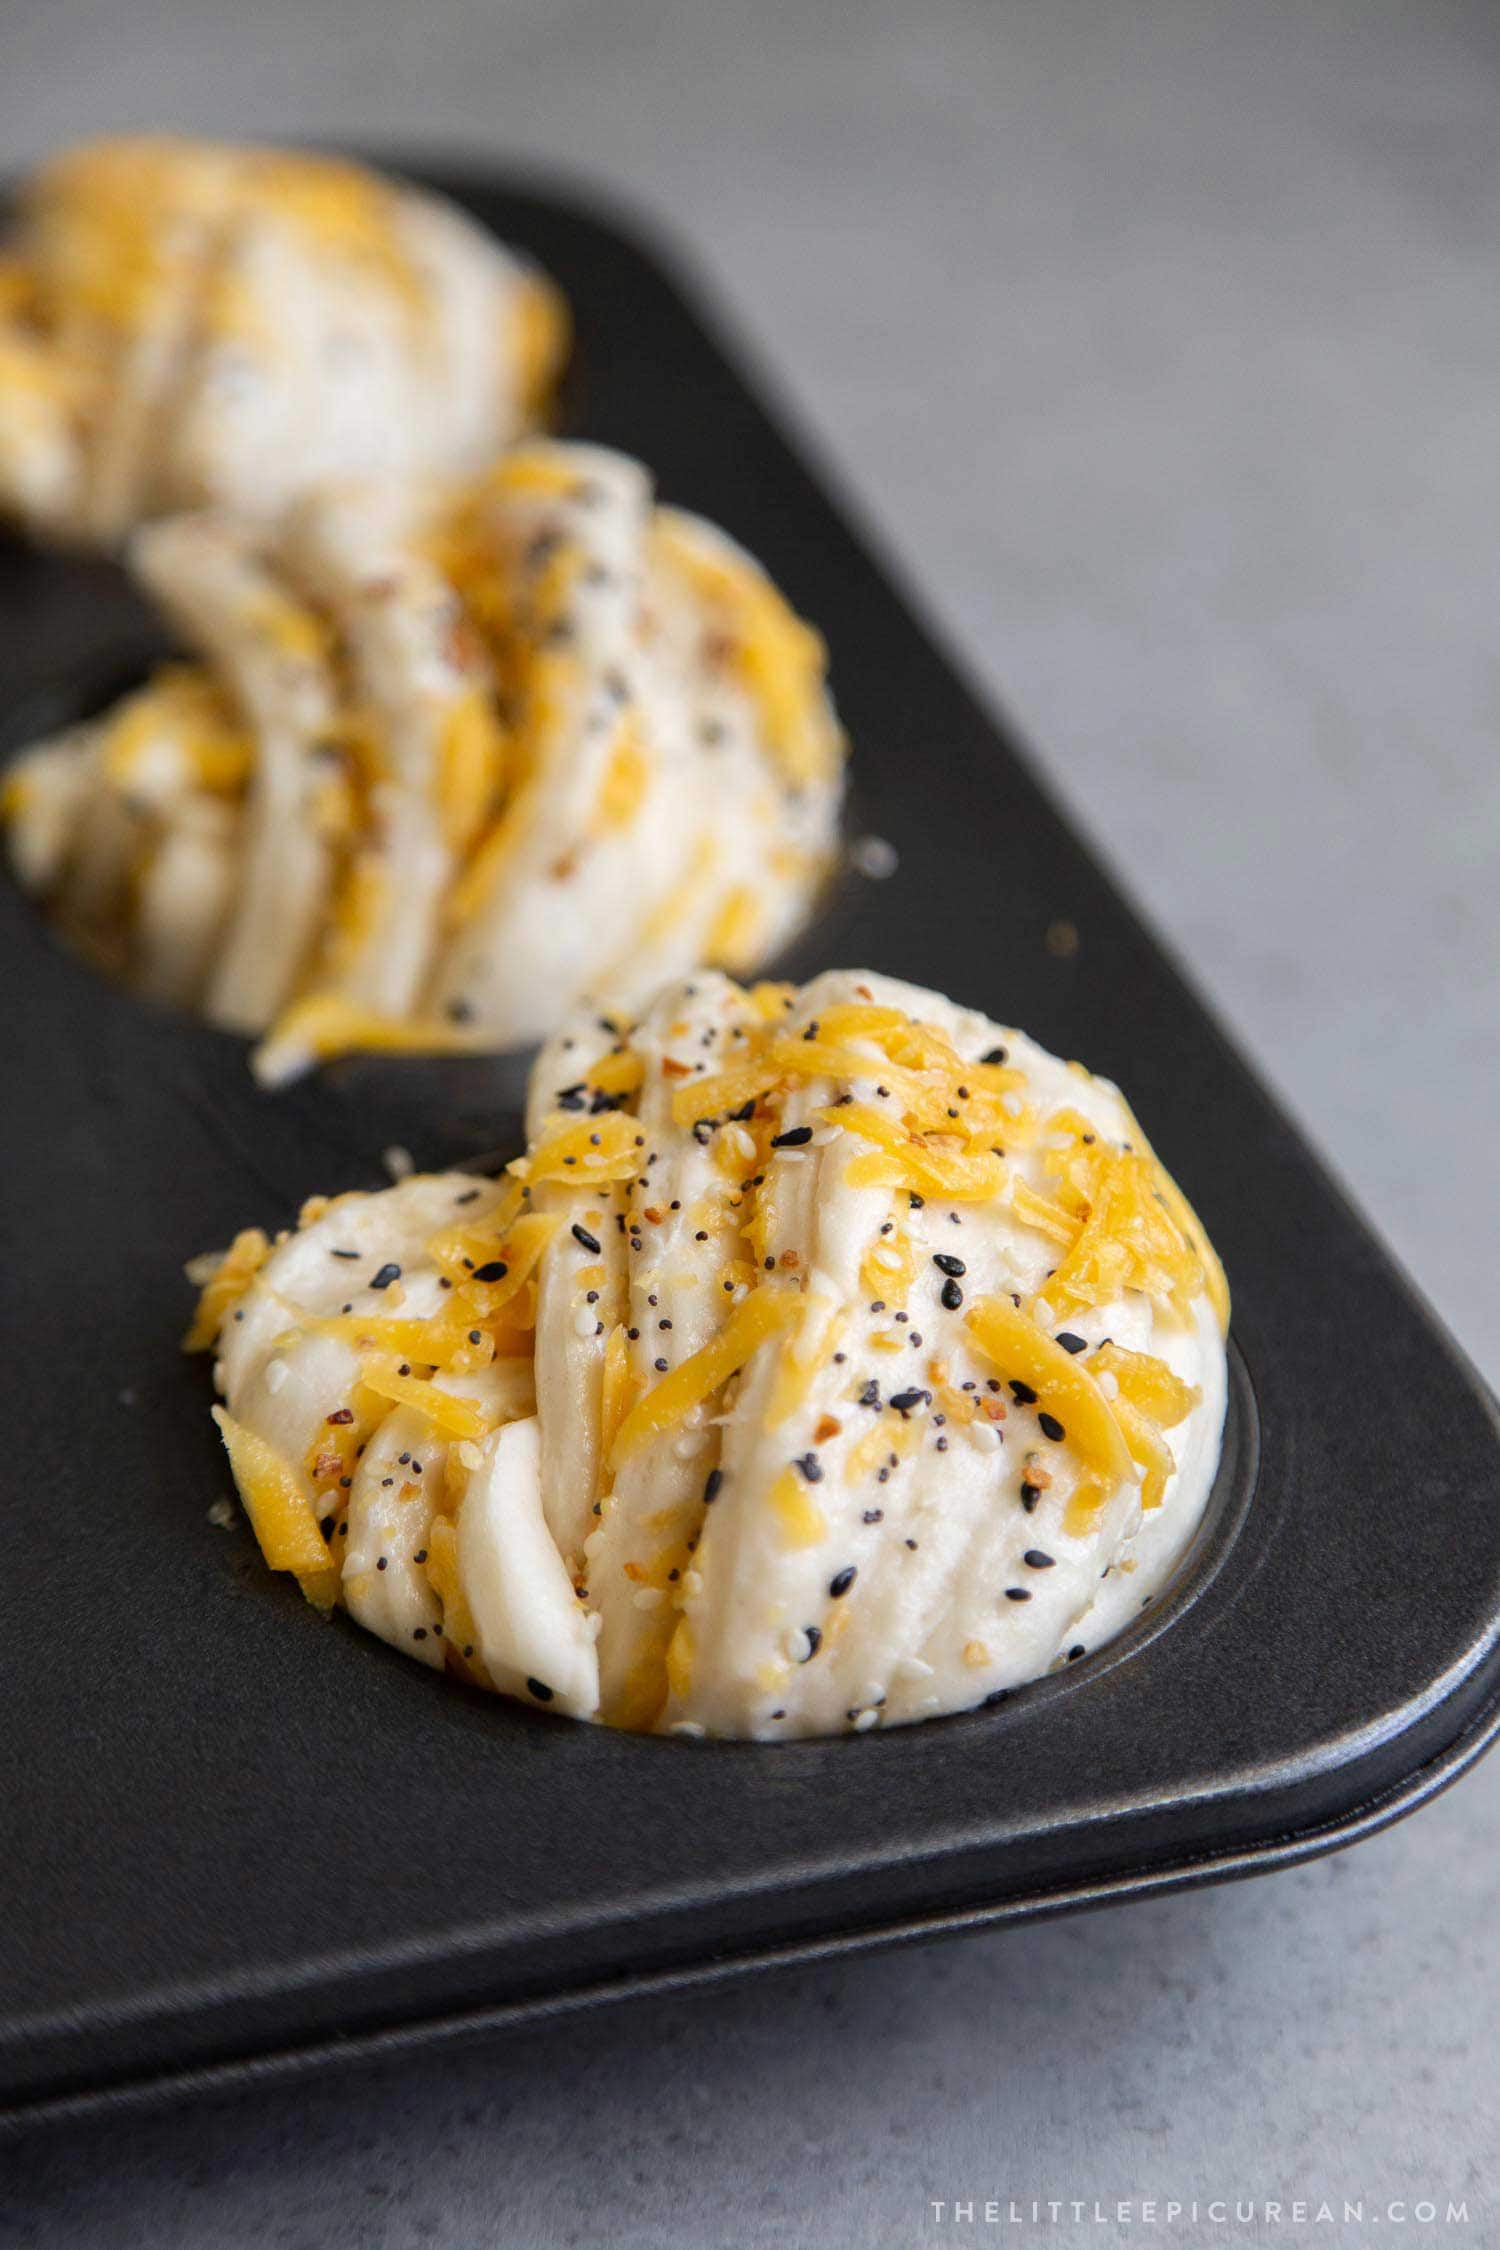 Cheddar Everything Babka Buns proofed and baked in giant muffin tins